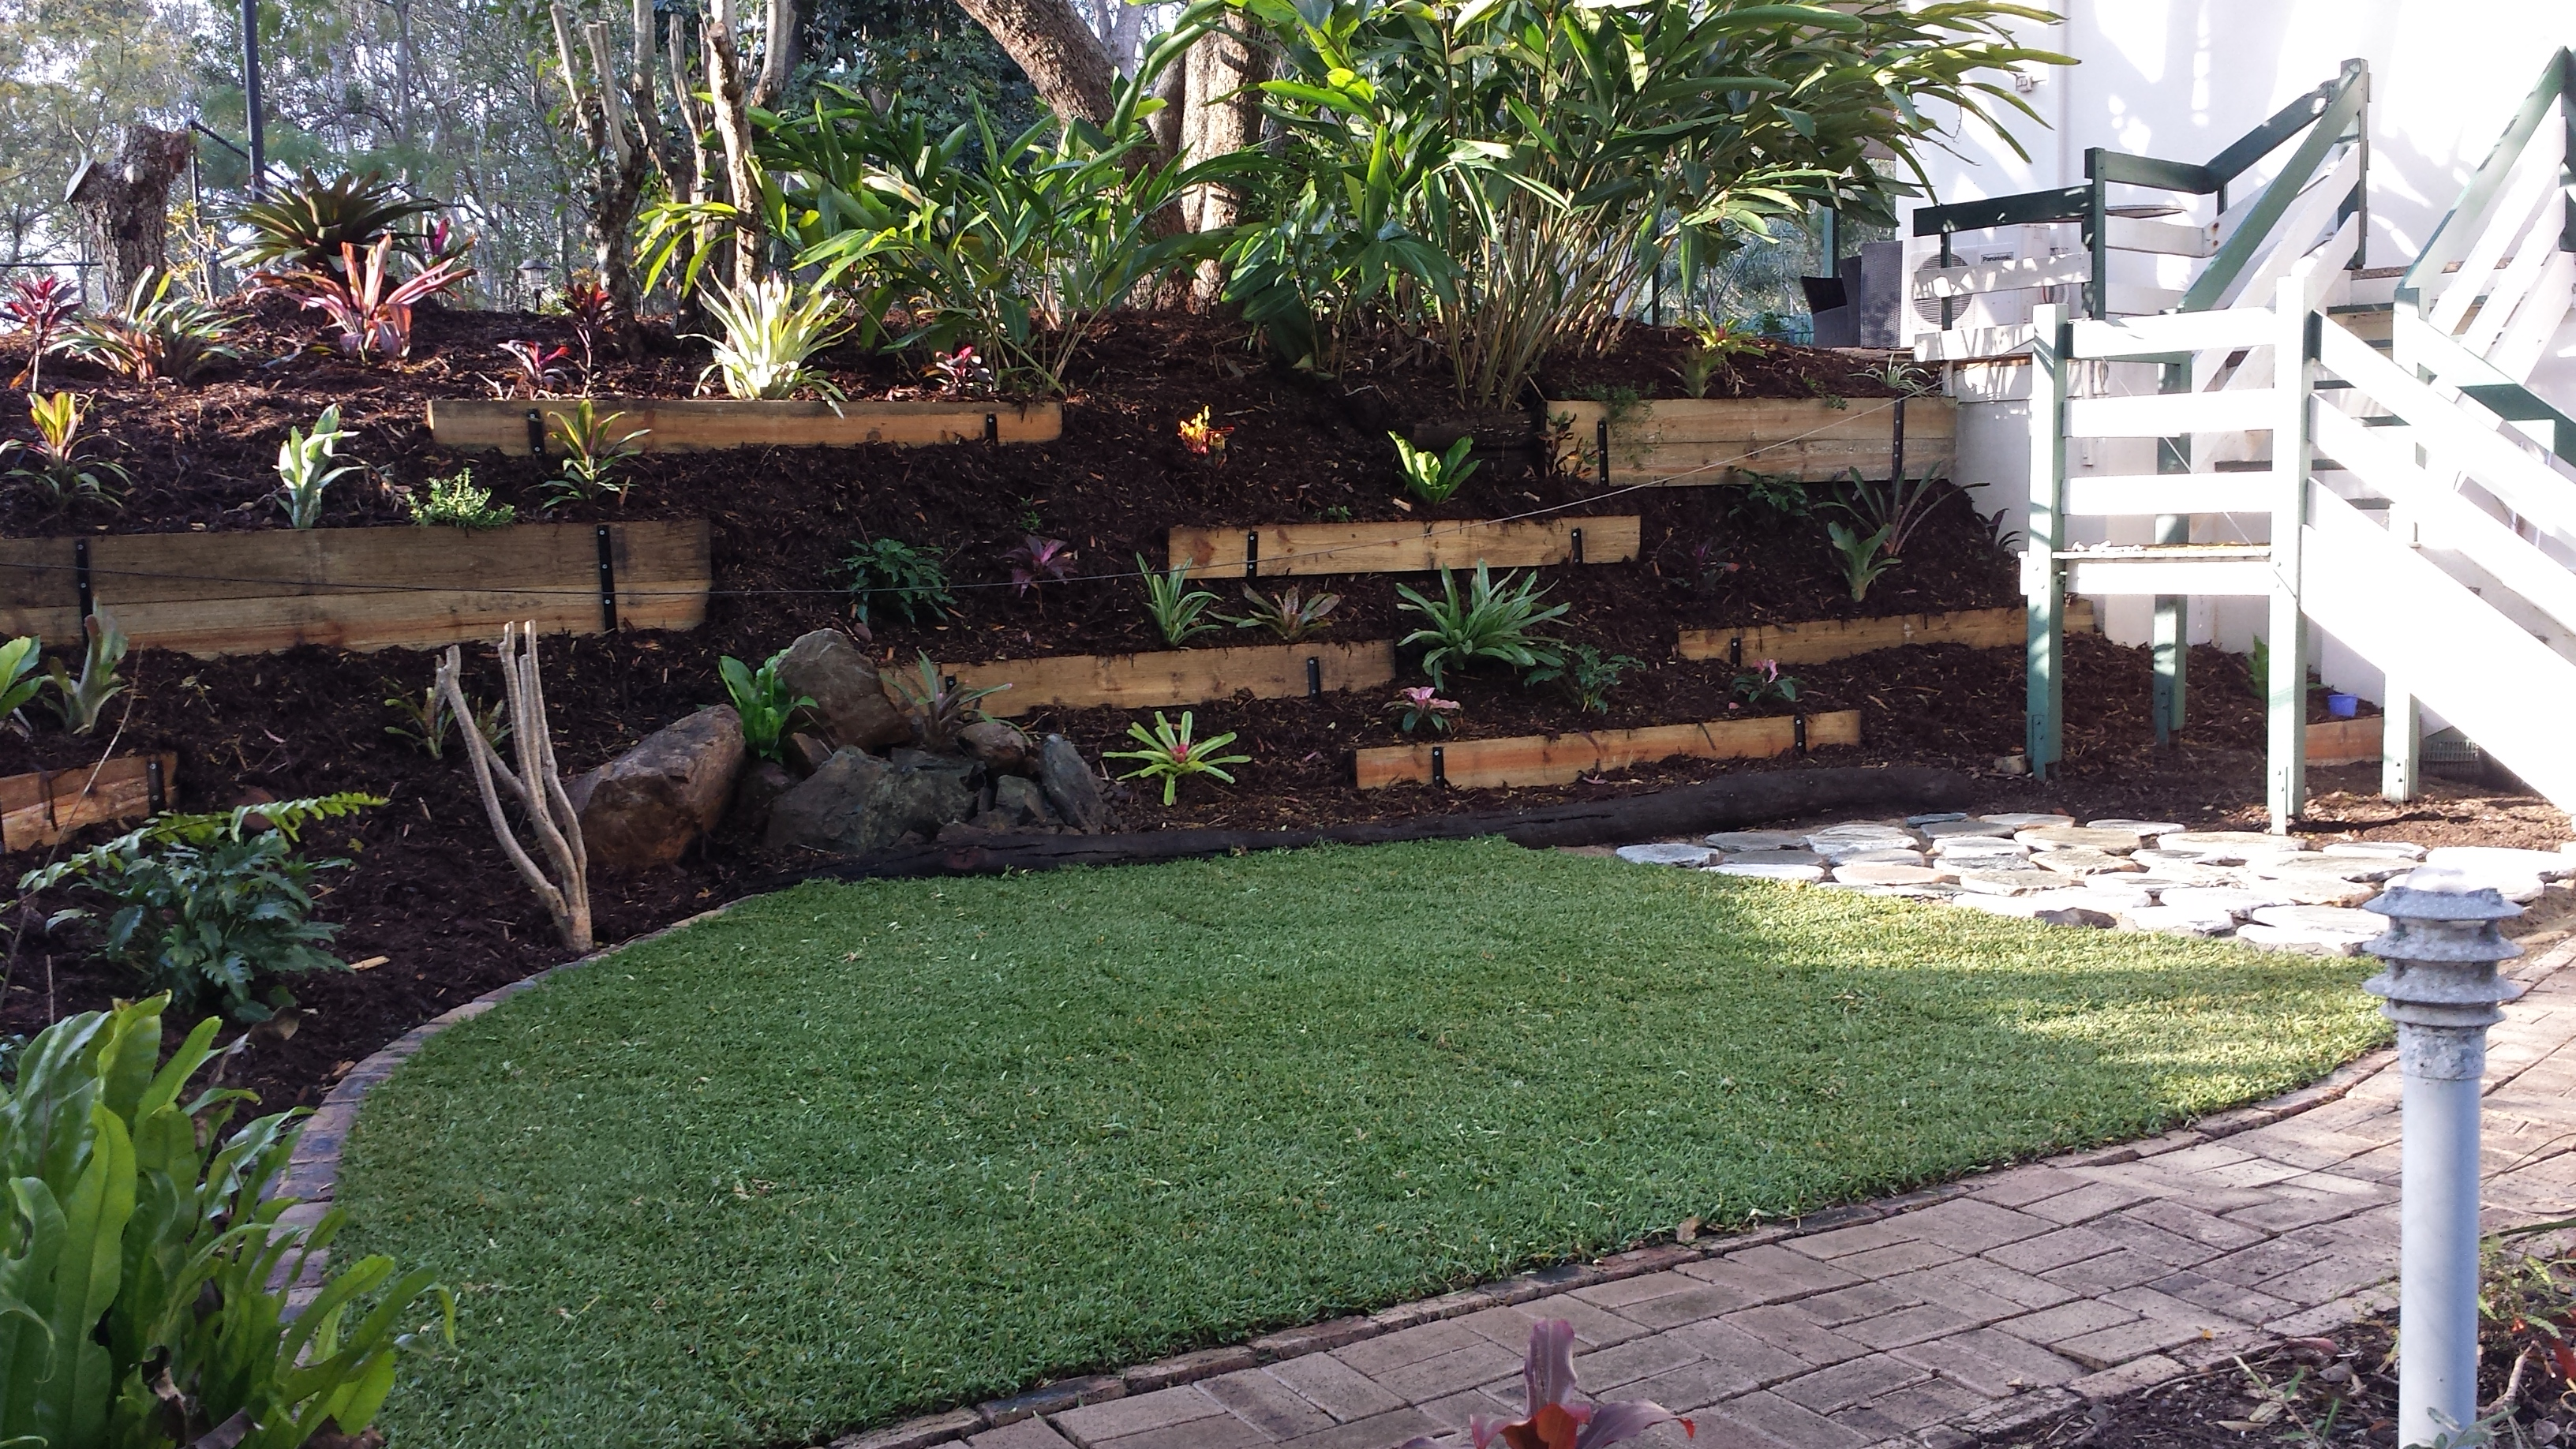 Garden designs garden ideas in brisbane queensland au for Landscape design brisbane